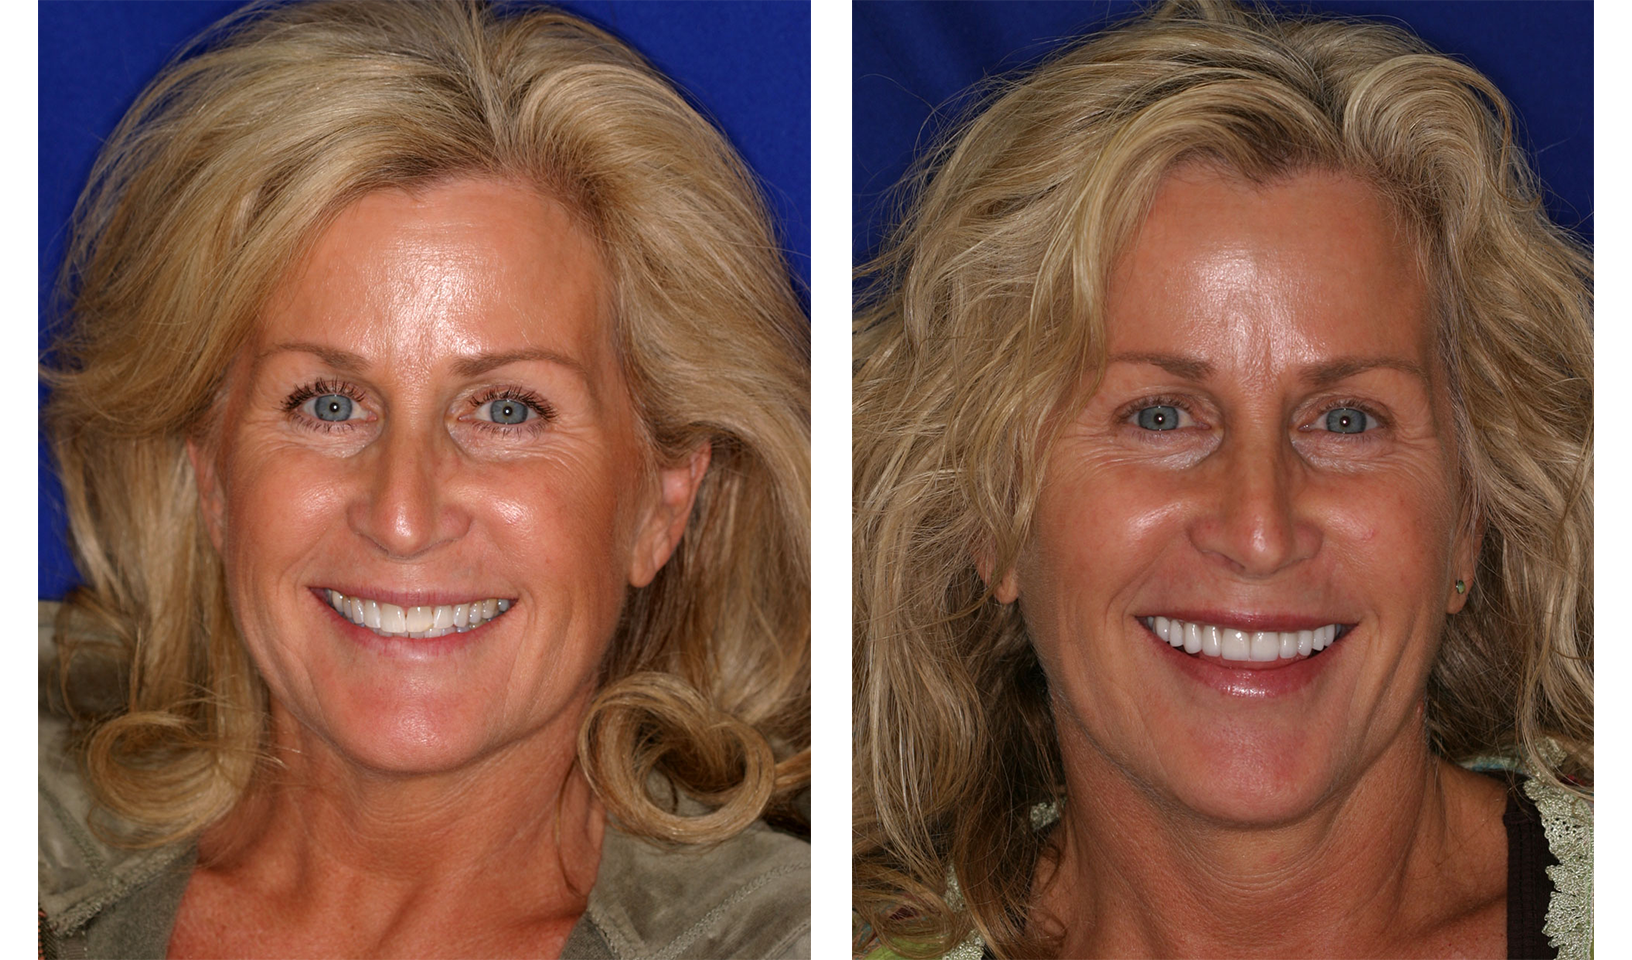 Before & After Porcelain Veneers in Danville, CA